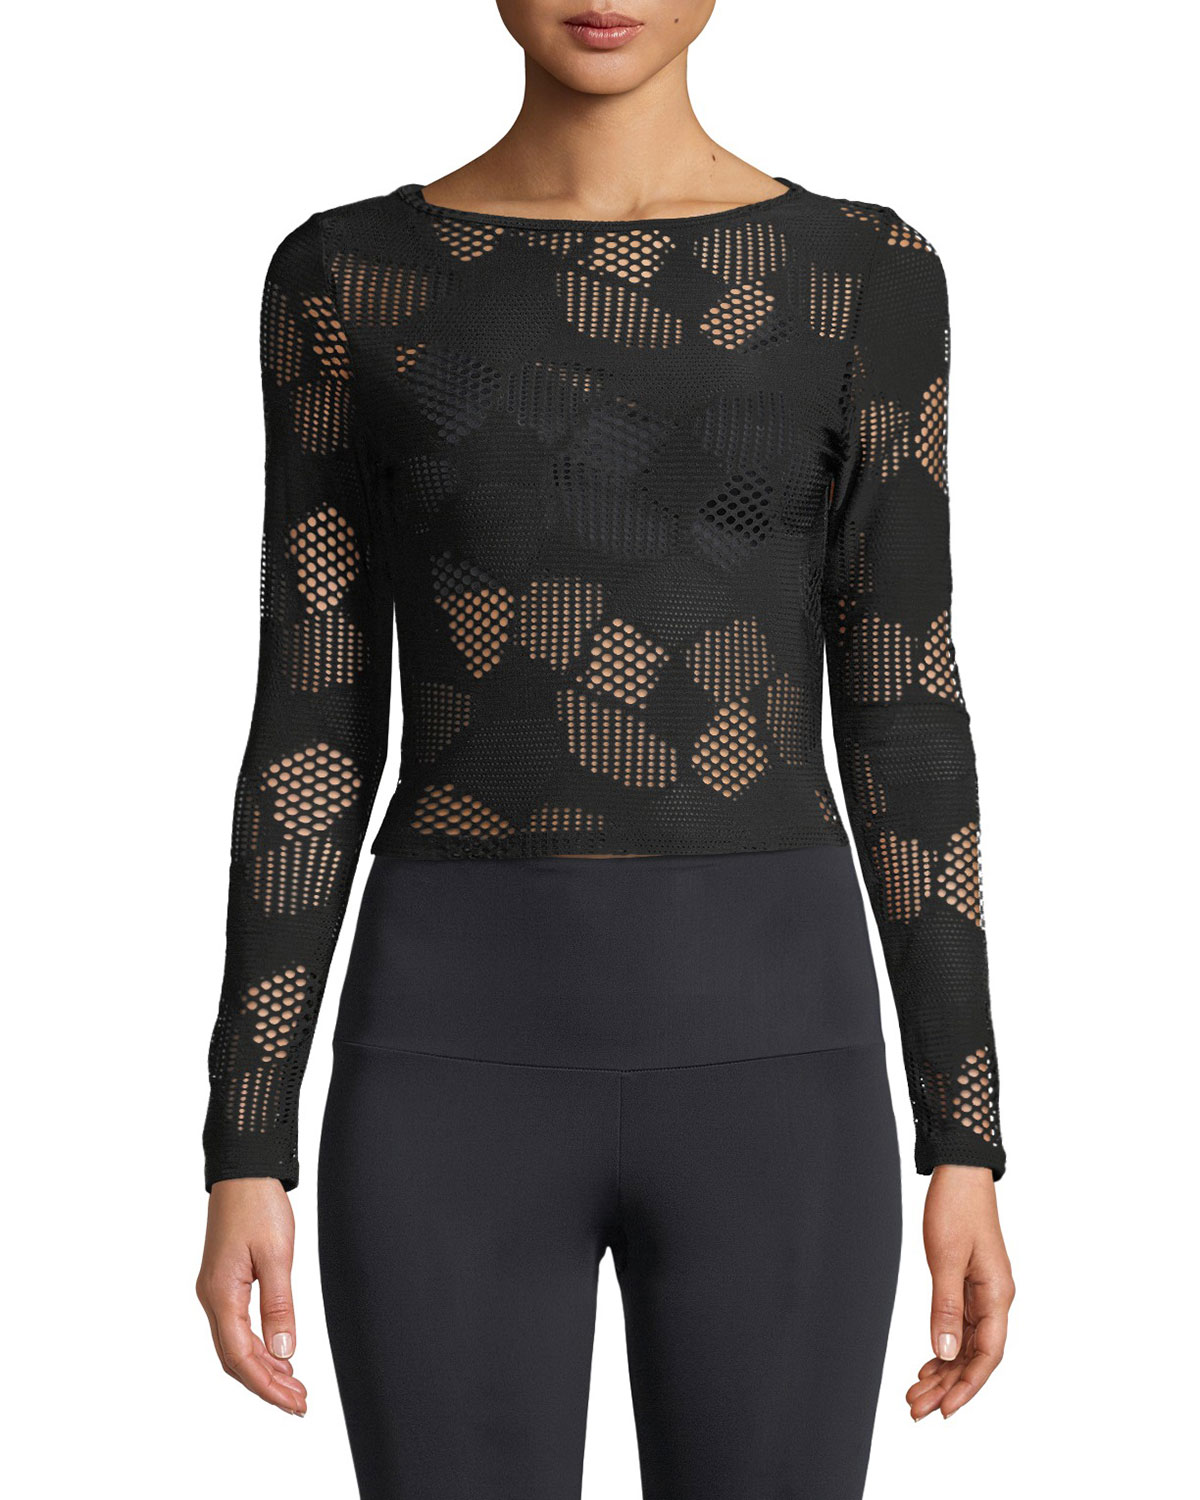 ONZIE LONG-SLEEVE MESH ACTIVE CROP TOP